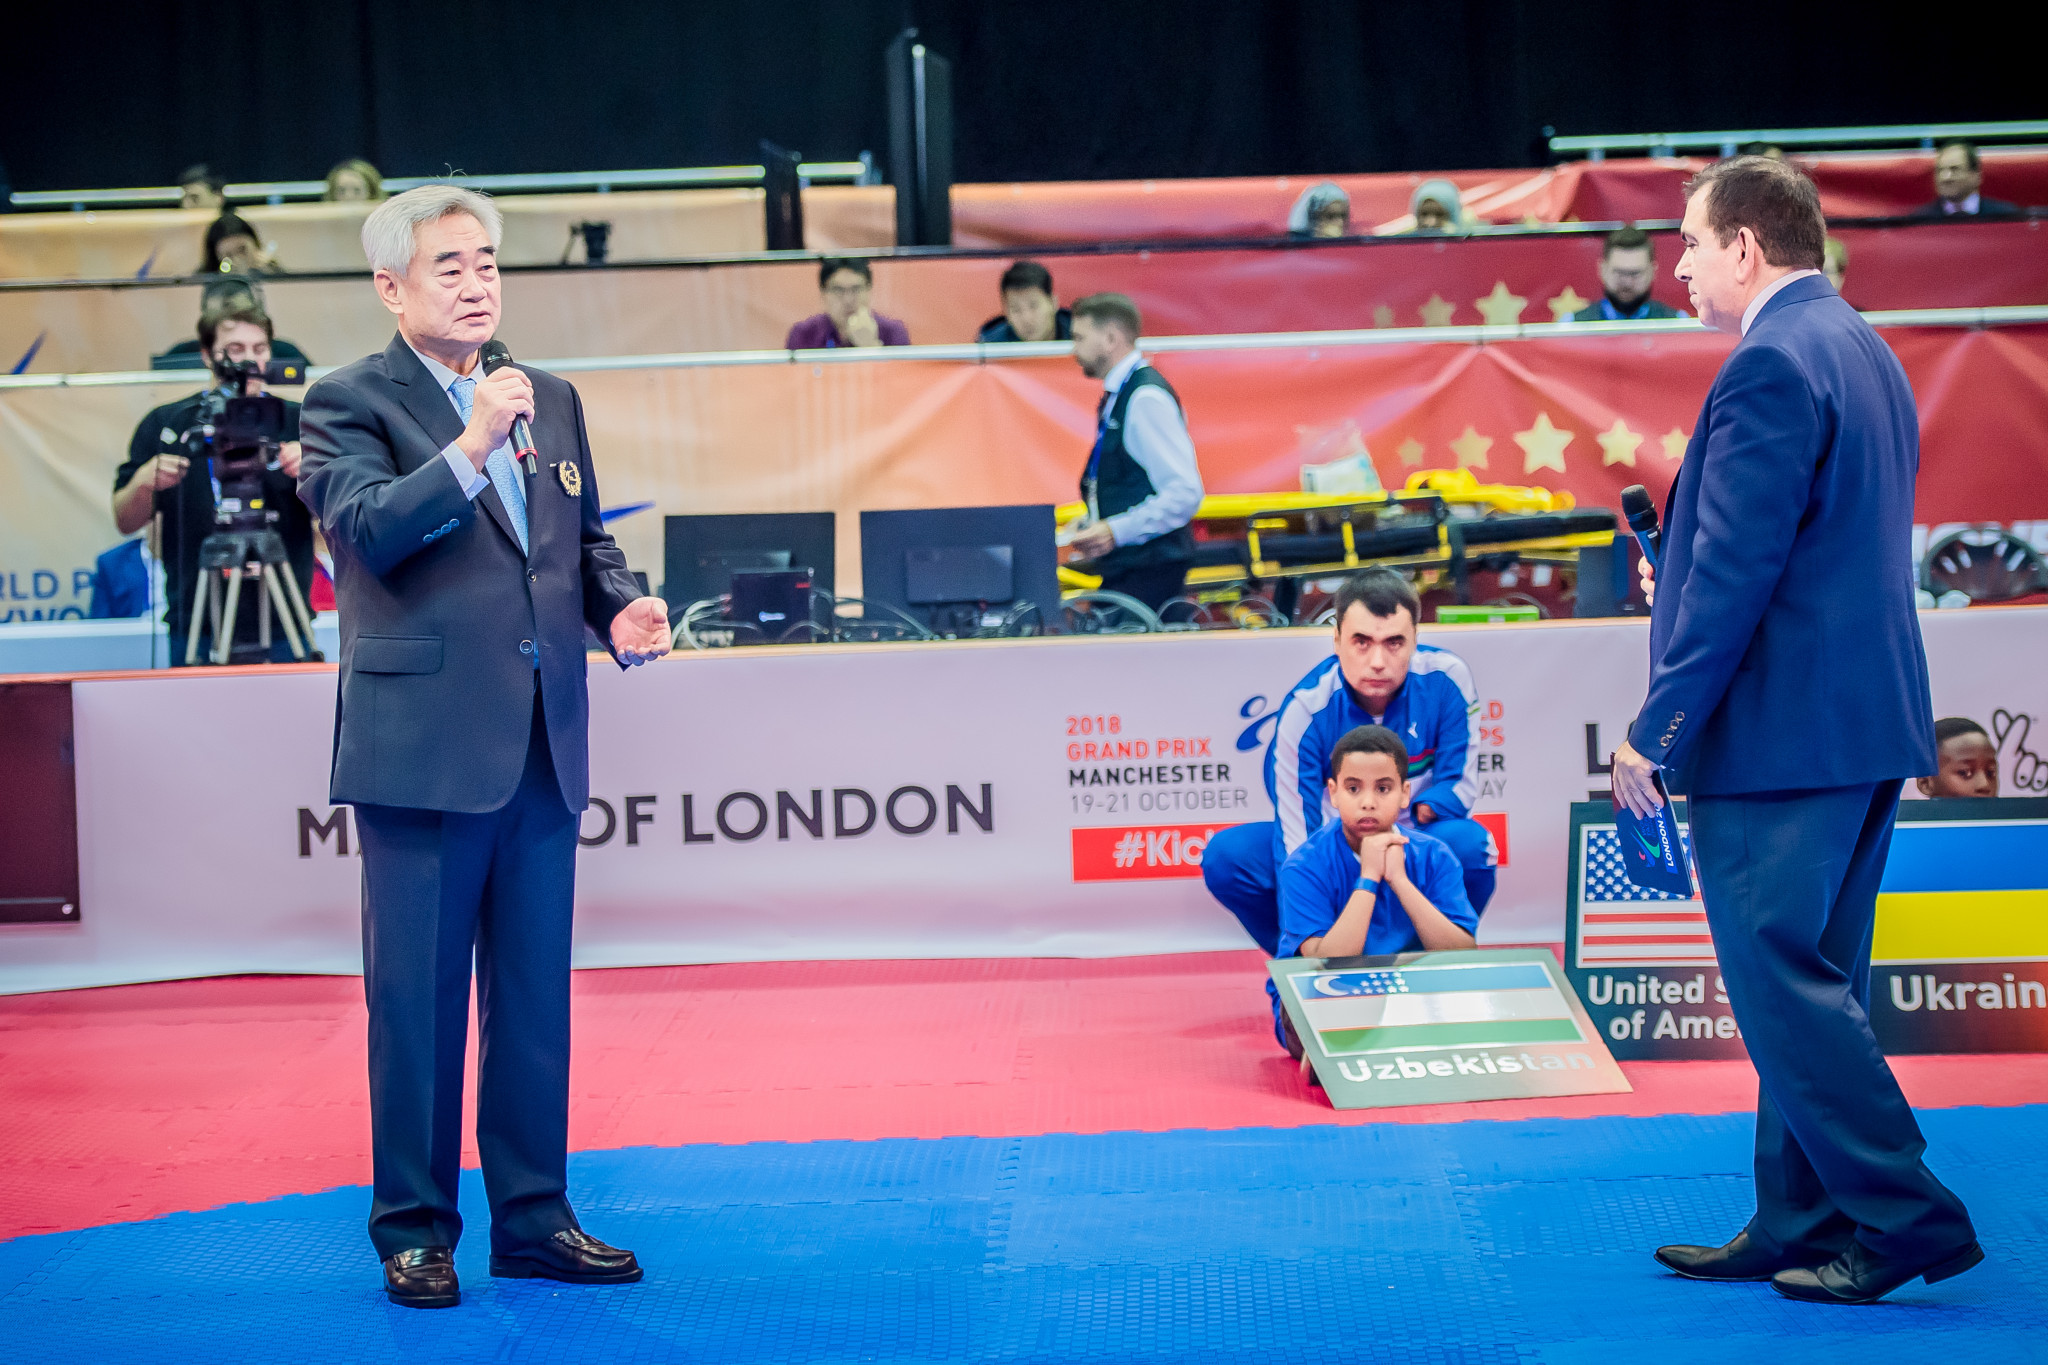 The Opening Ceremony took place earlier in the day with World Taekwondo President Chungwon Choue delivering a speech ©World Taekwondo